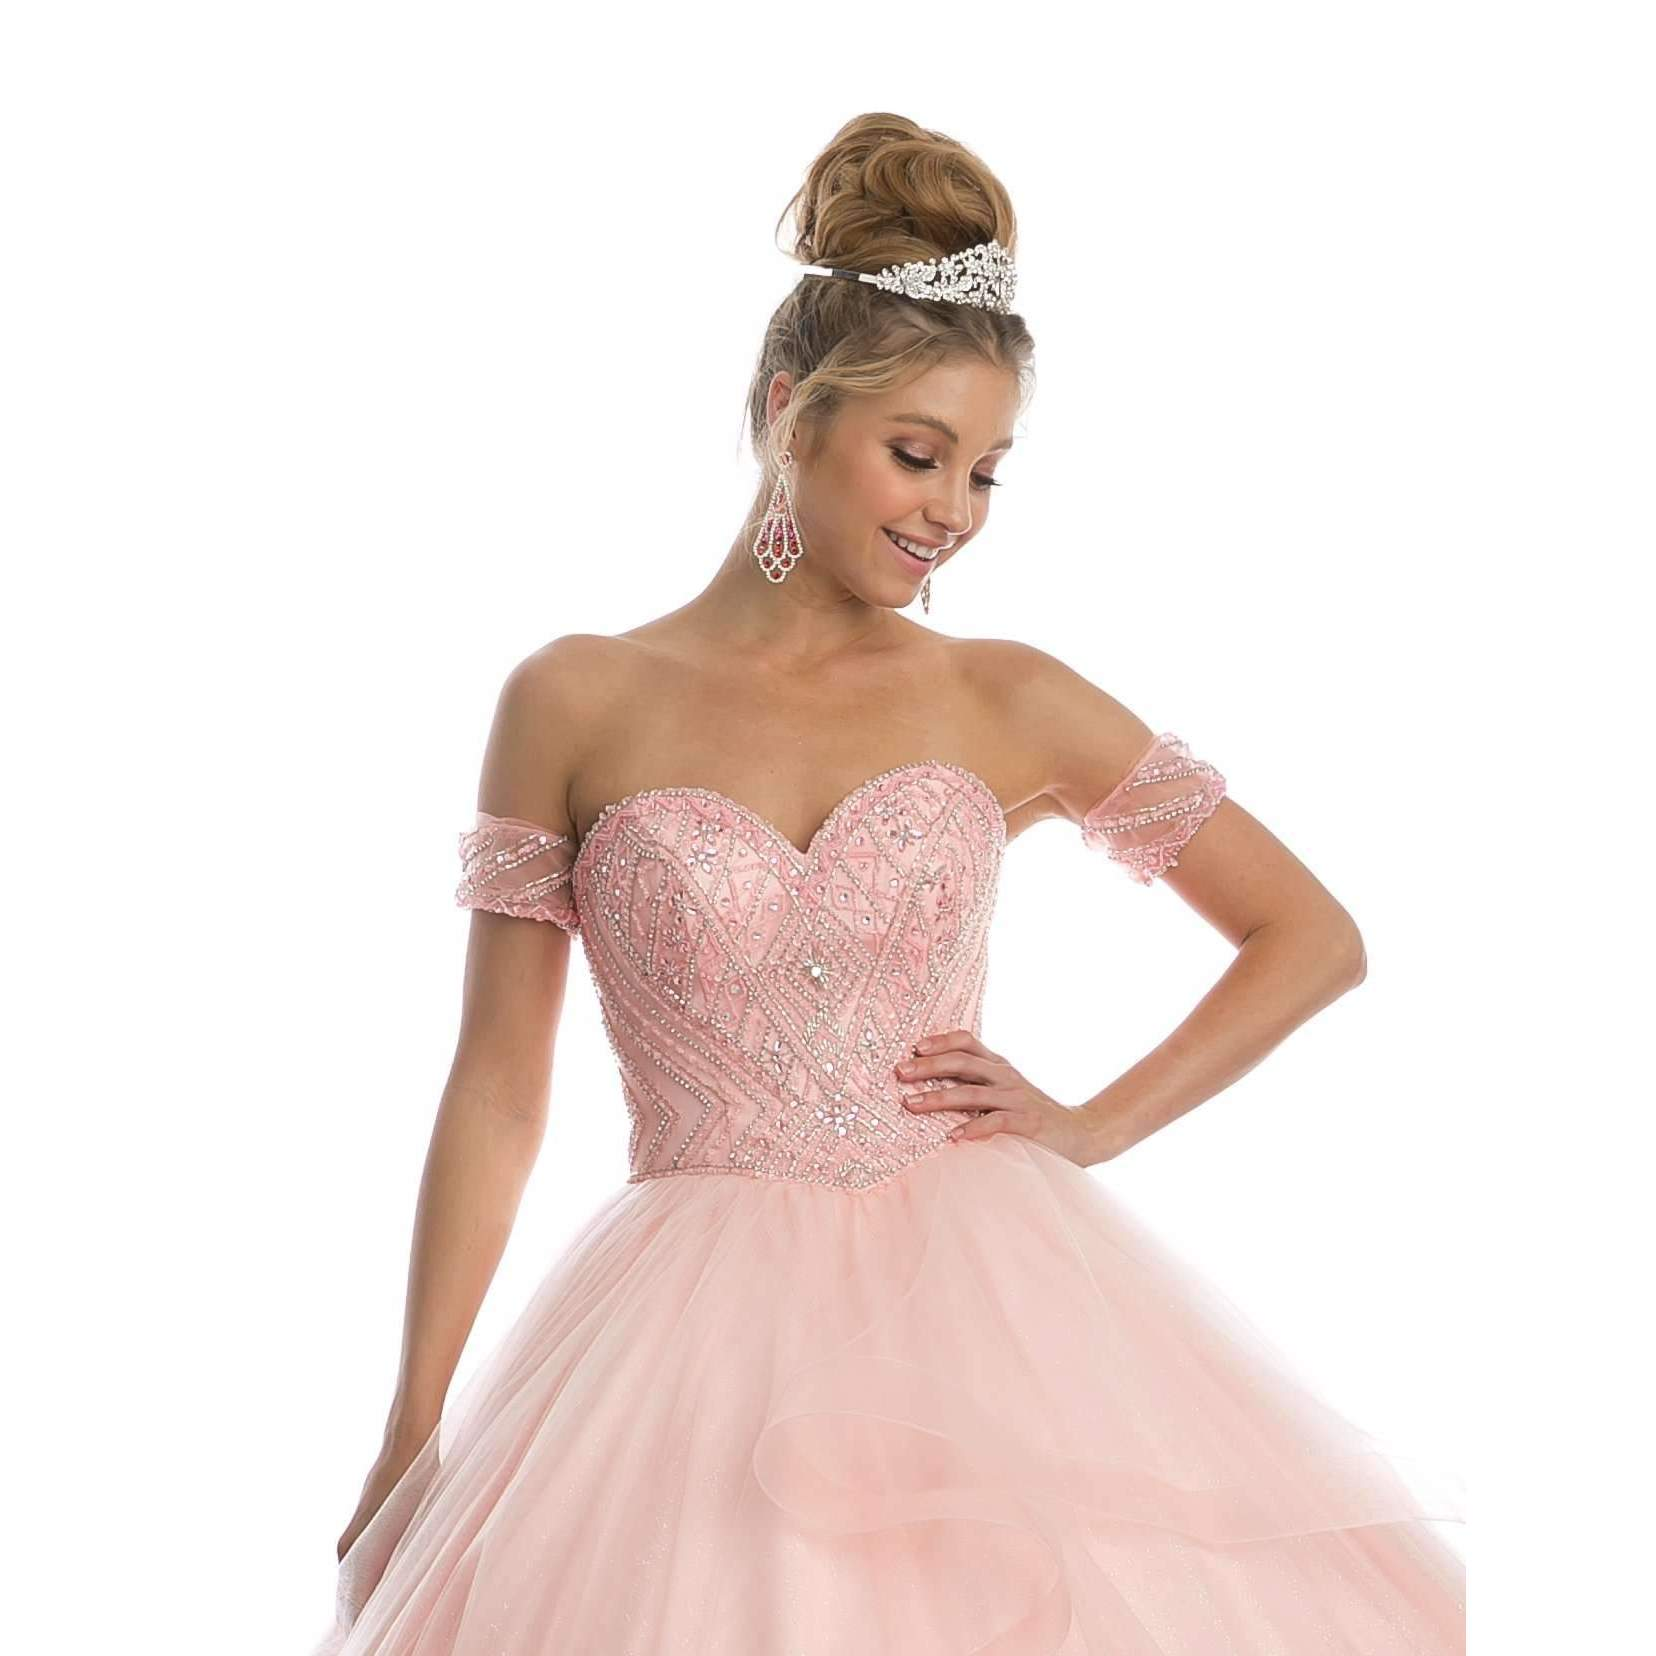 Beaded Embroidery Sweet Heart on Glitter Mesh Ball Gown 1424 - Julietdresses